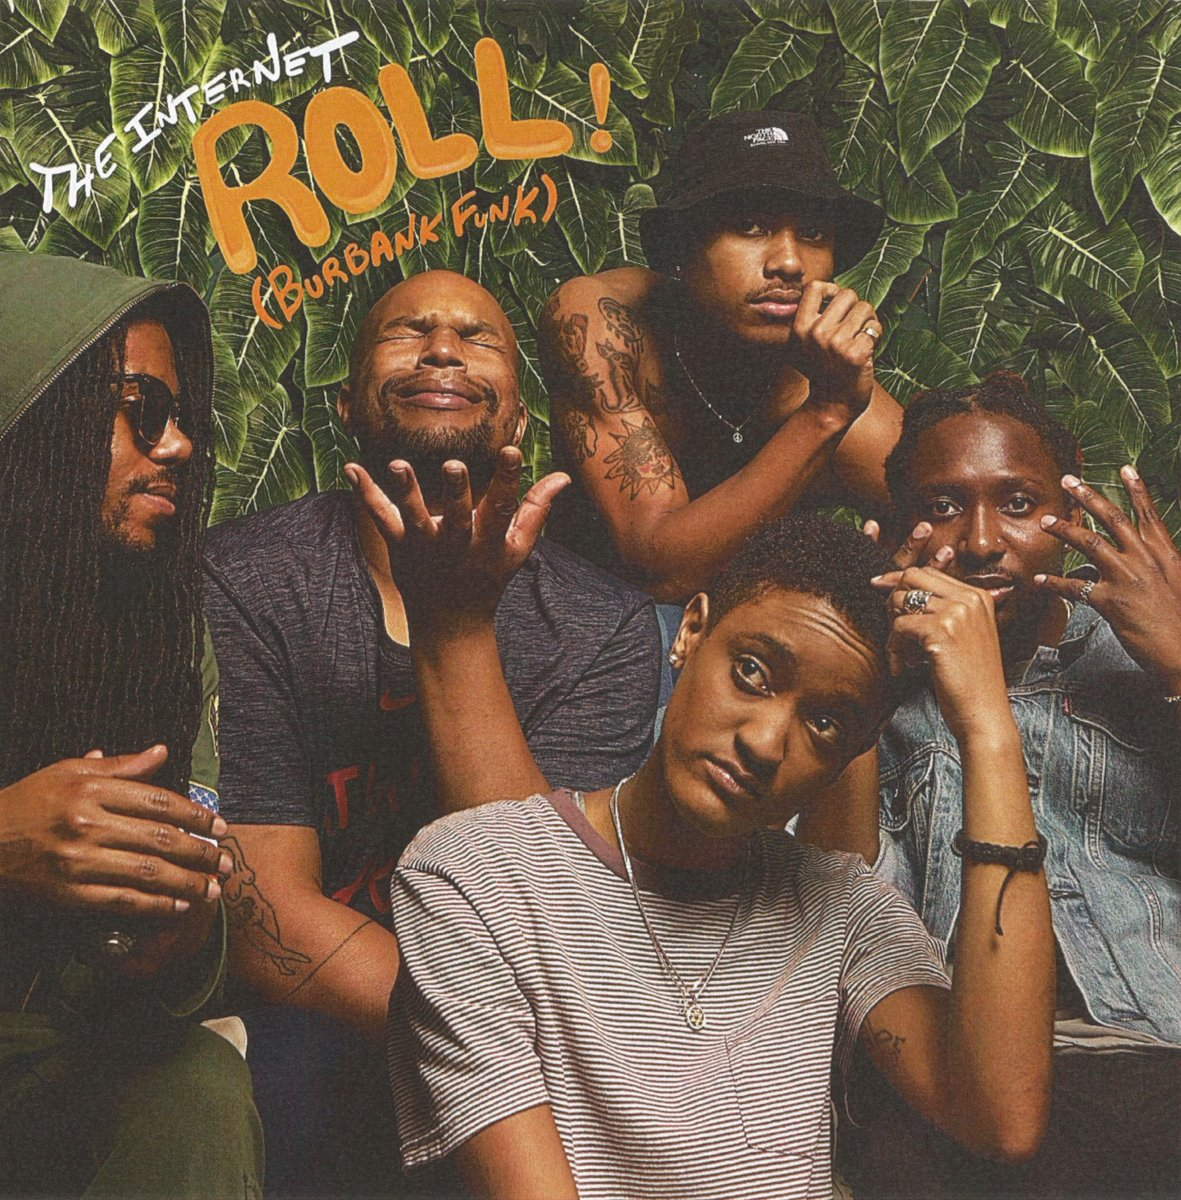 the internet roll